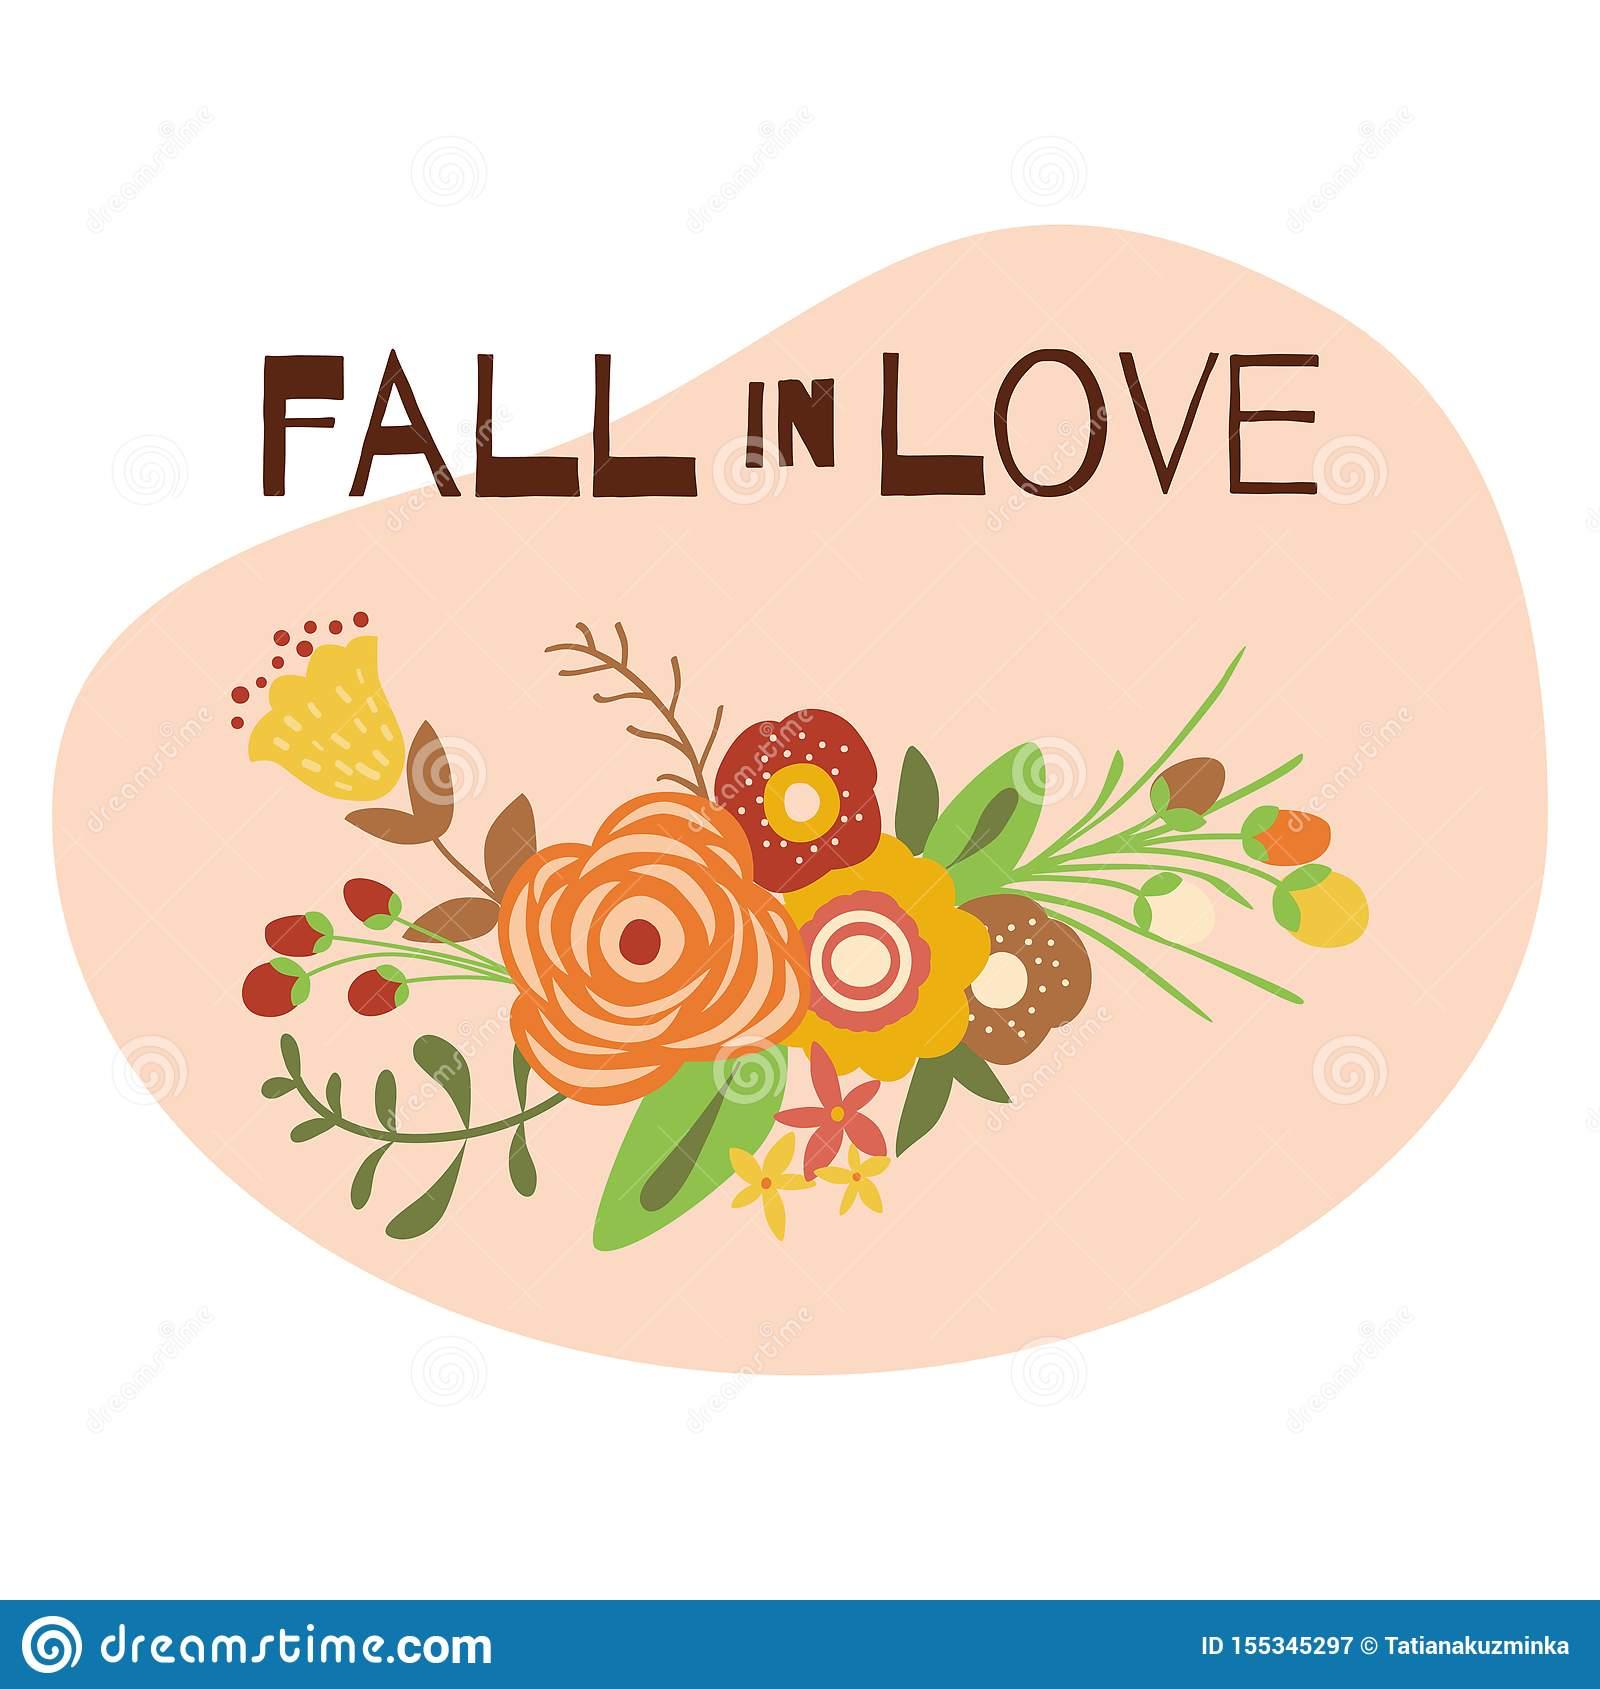 Autumn Quotes Fall In Love Cute Autumn Phrases Floral Bouquet